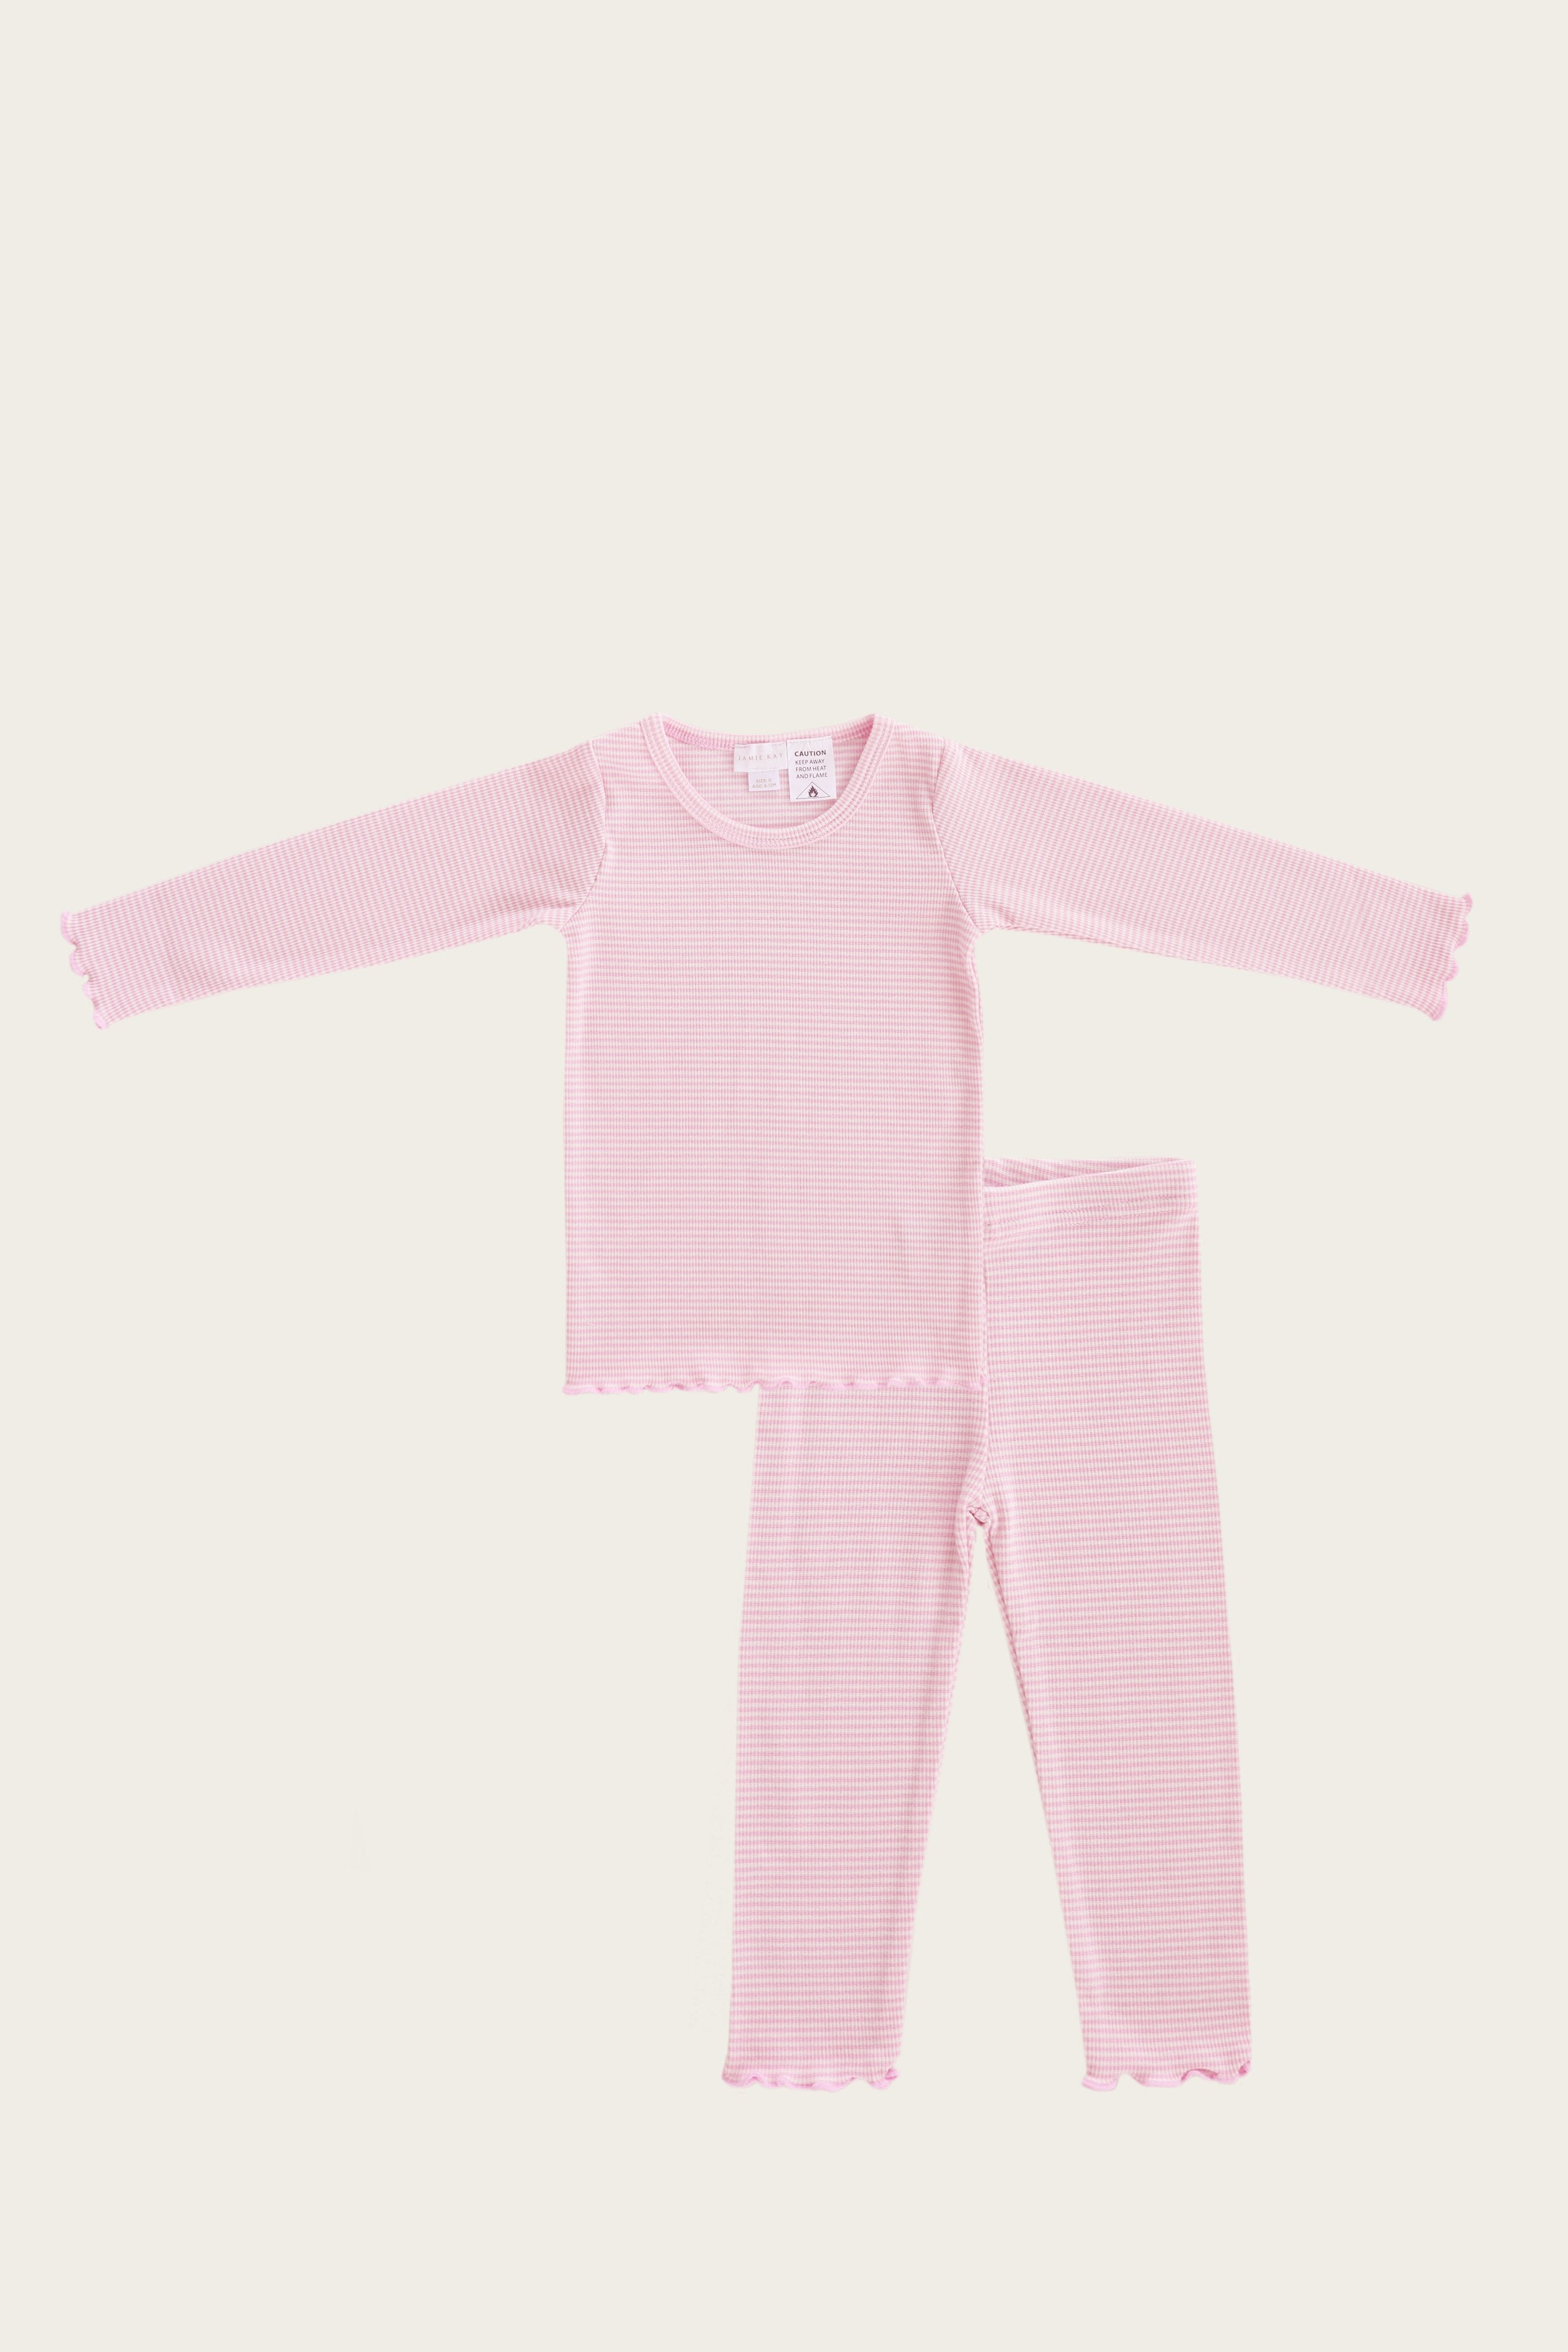 Organic Cotton Pyjama Set - Bubblegum Stripe